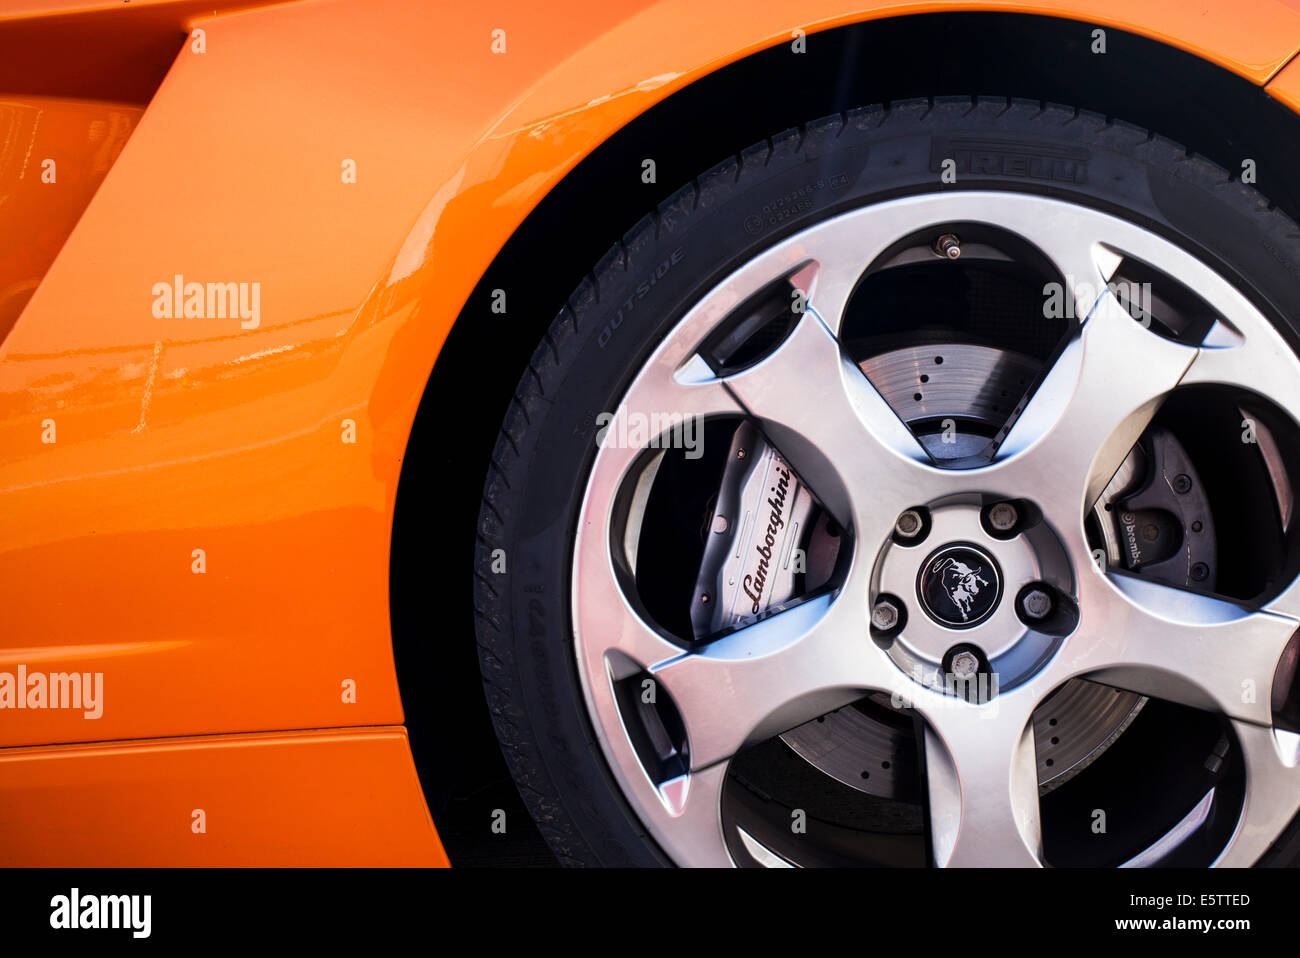 Lamborghini Gallardo Wheel And Brake Caliper Abstract. Italian Super Car    Stock Image